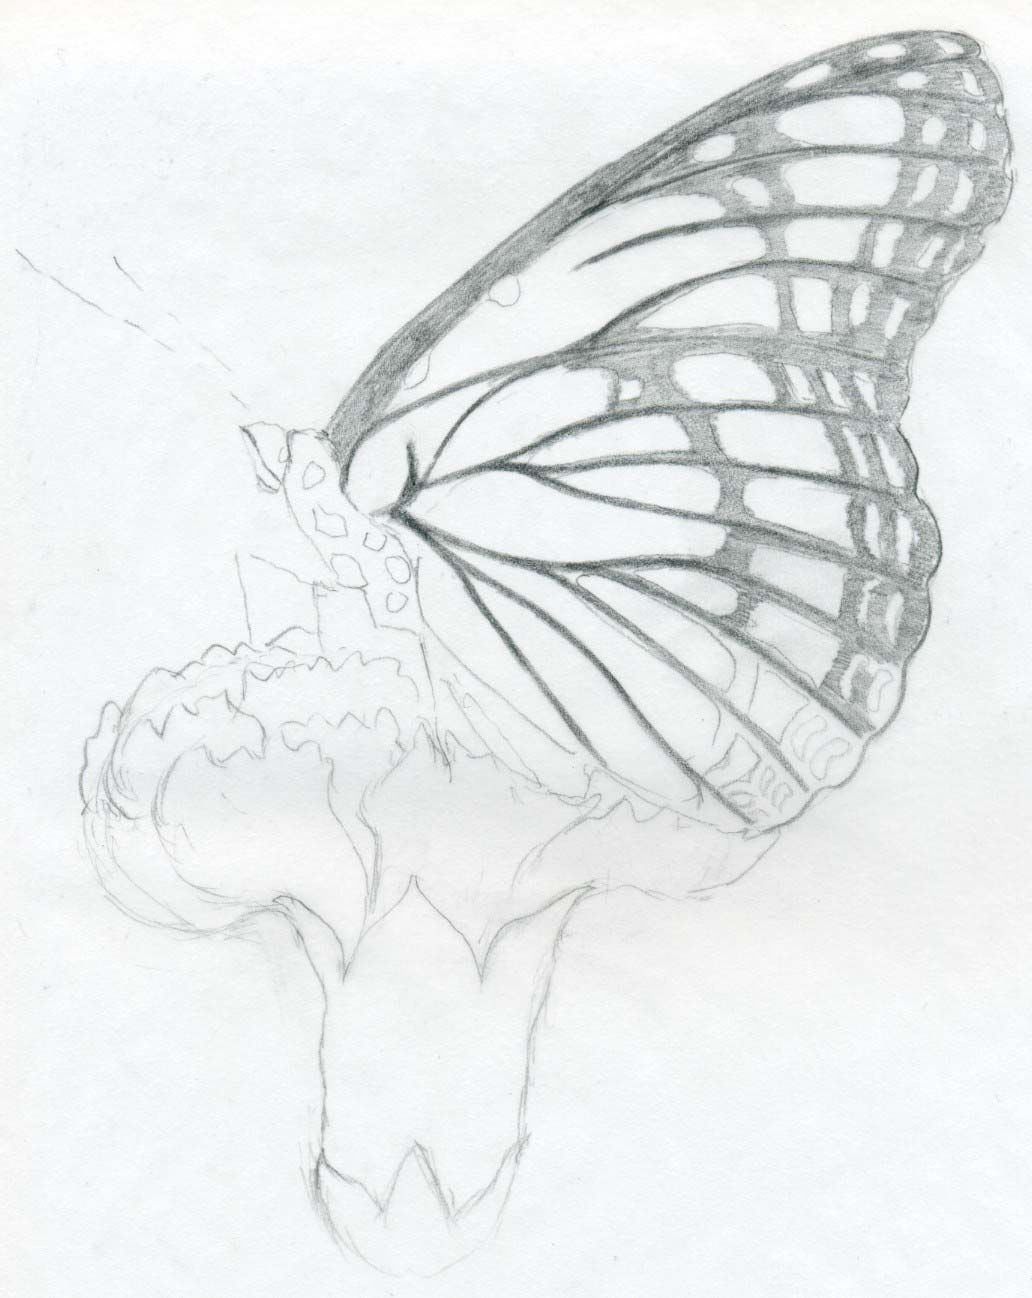 Butterfly Pencil Drawings You Can Practice Pencil Drawings Easy